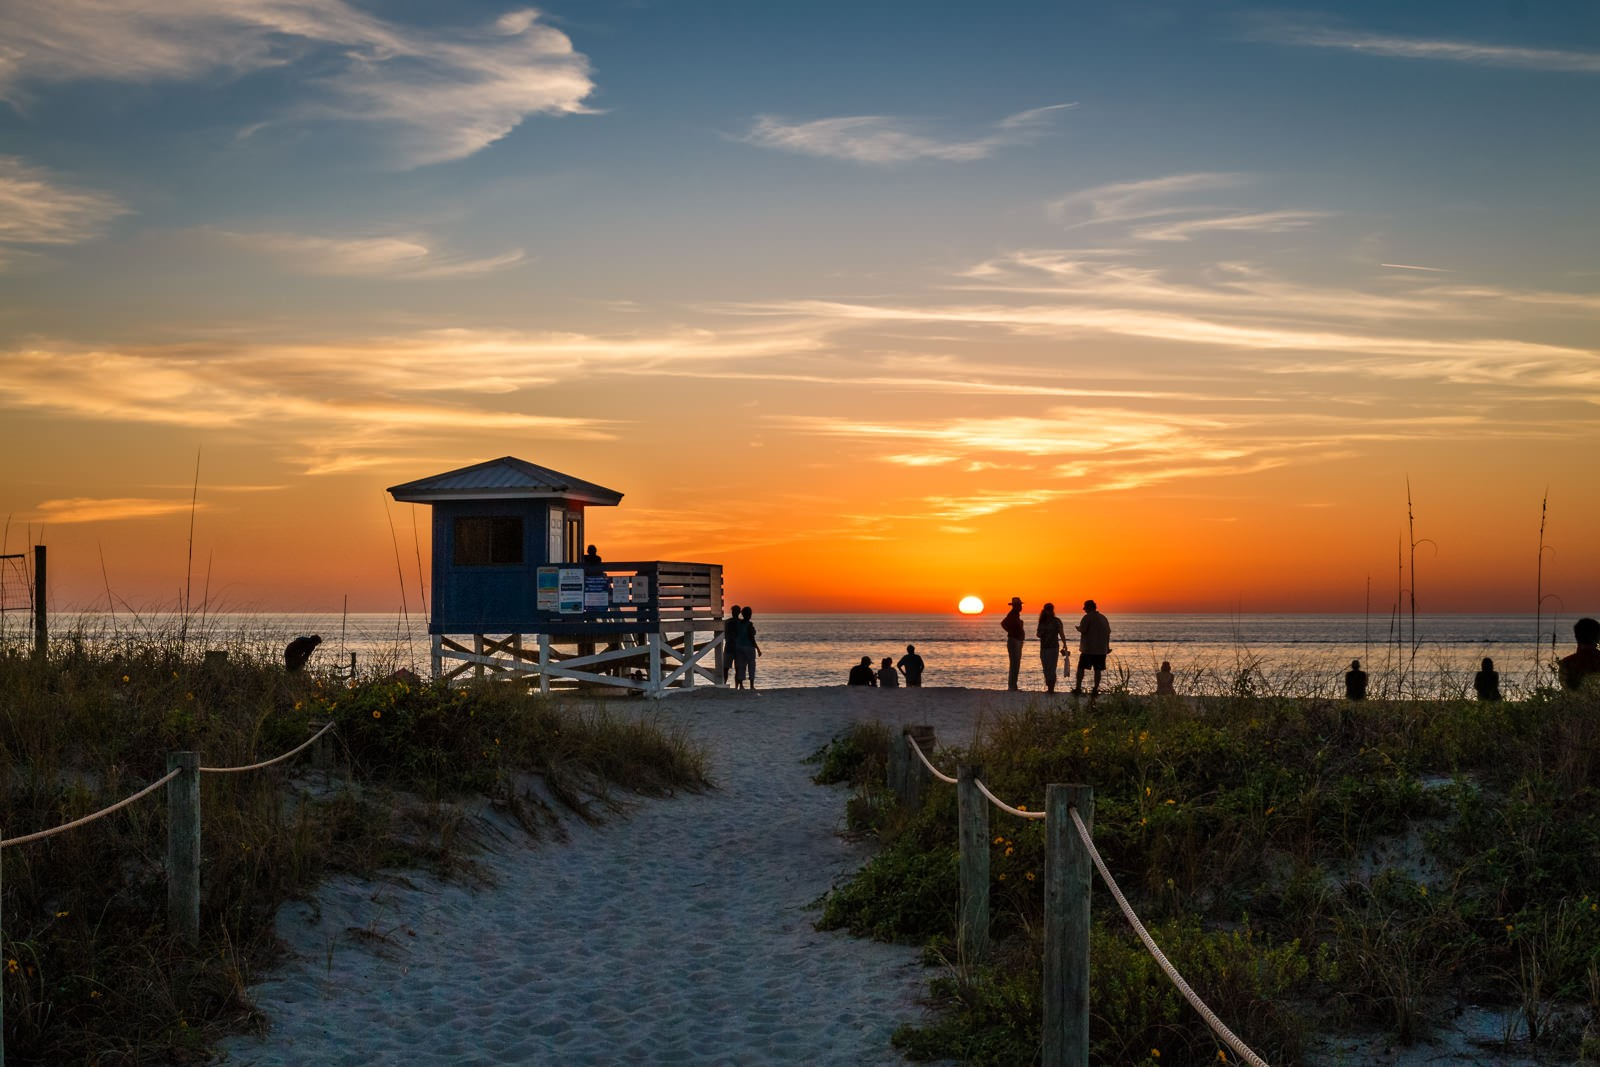 The 10 Best Hotels in Venice Beach Florida